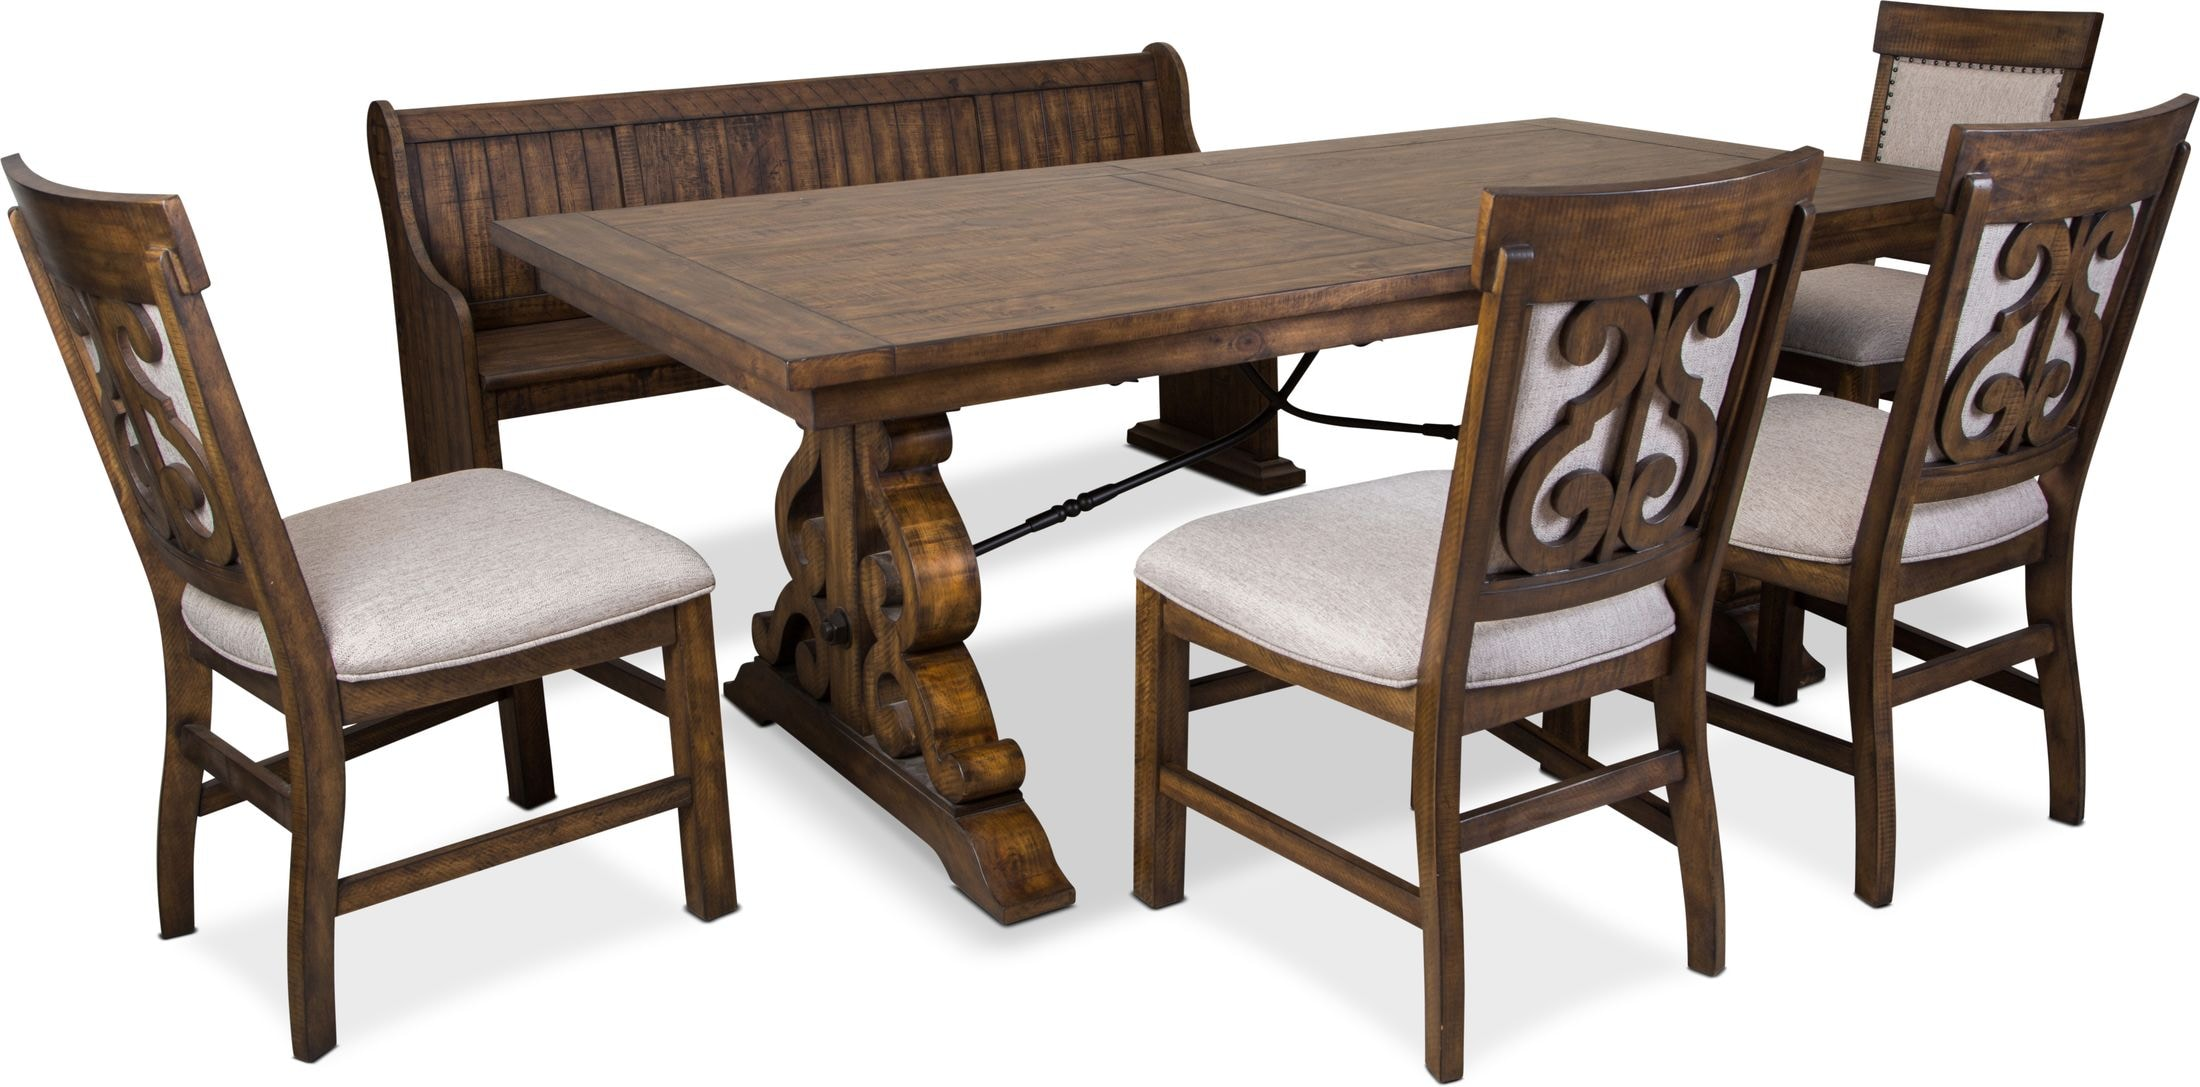 Dining Room Furniture - Charthouse Rectangular Dining Table, 4 Upholstered Side Chairs and Bench